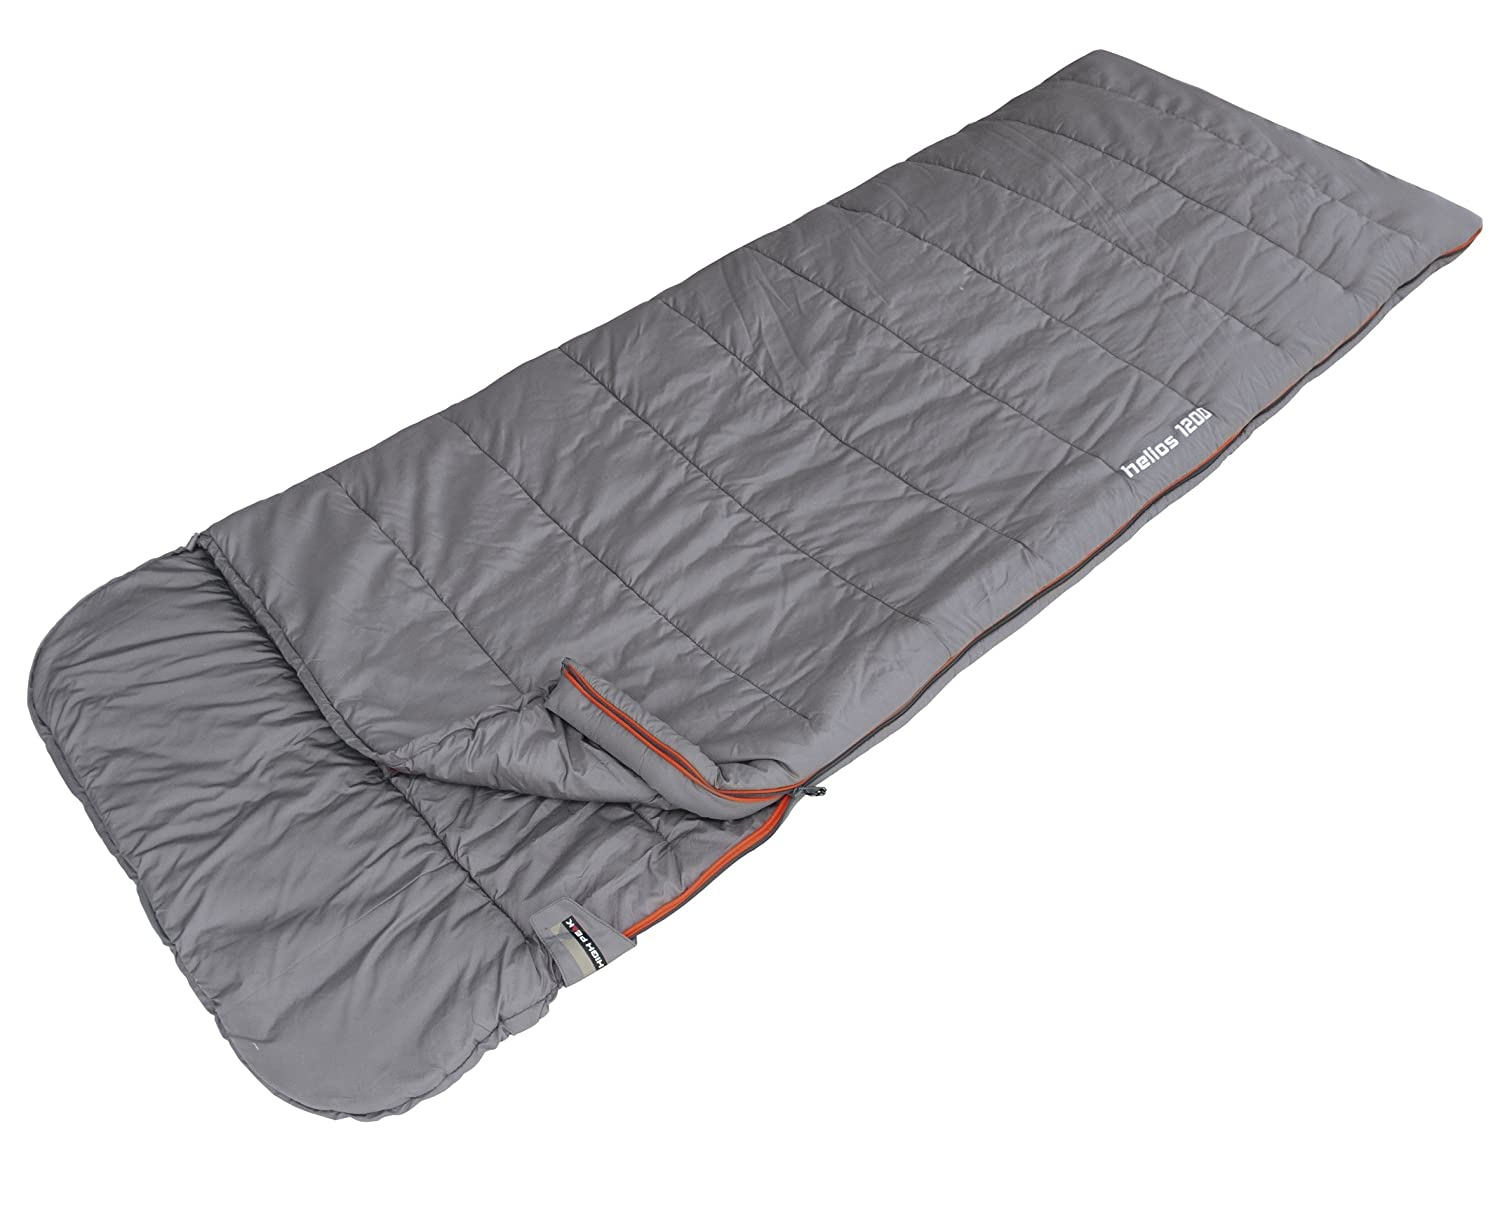 High Peak Helios 1200 - Saco de dormir (220 x 80 cm), color gris: Amazon.es: Deportes y aire libre